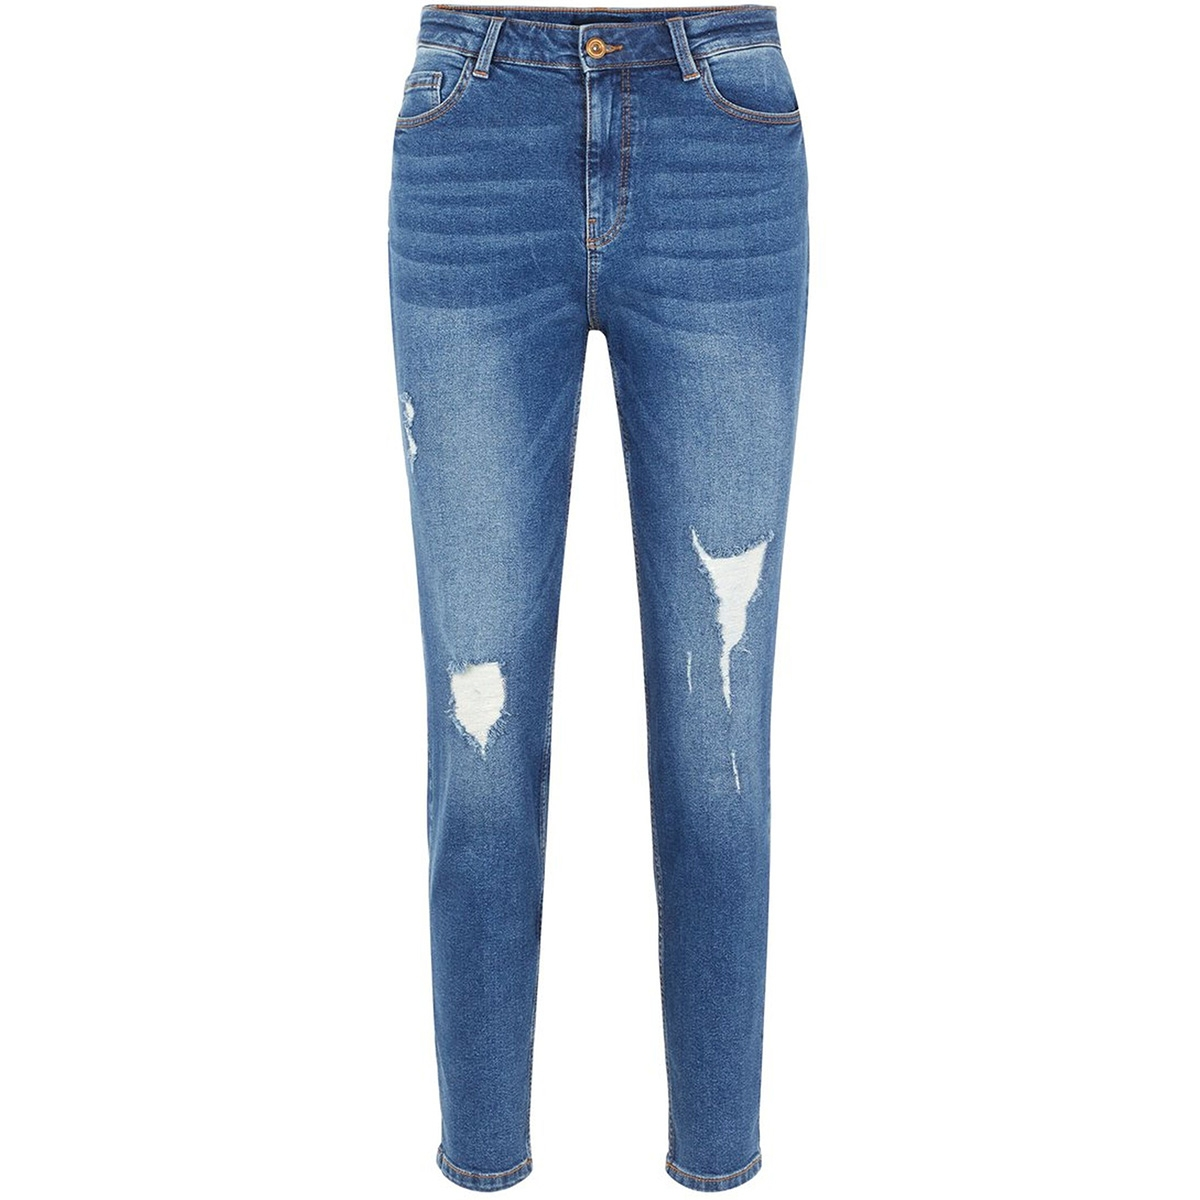 pckesia mom hw ank destroy db327 bf 17102088 pieces jeans dark blue denim